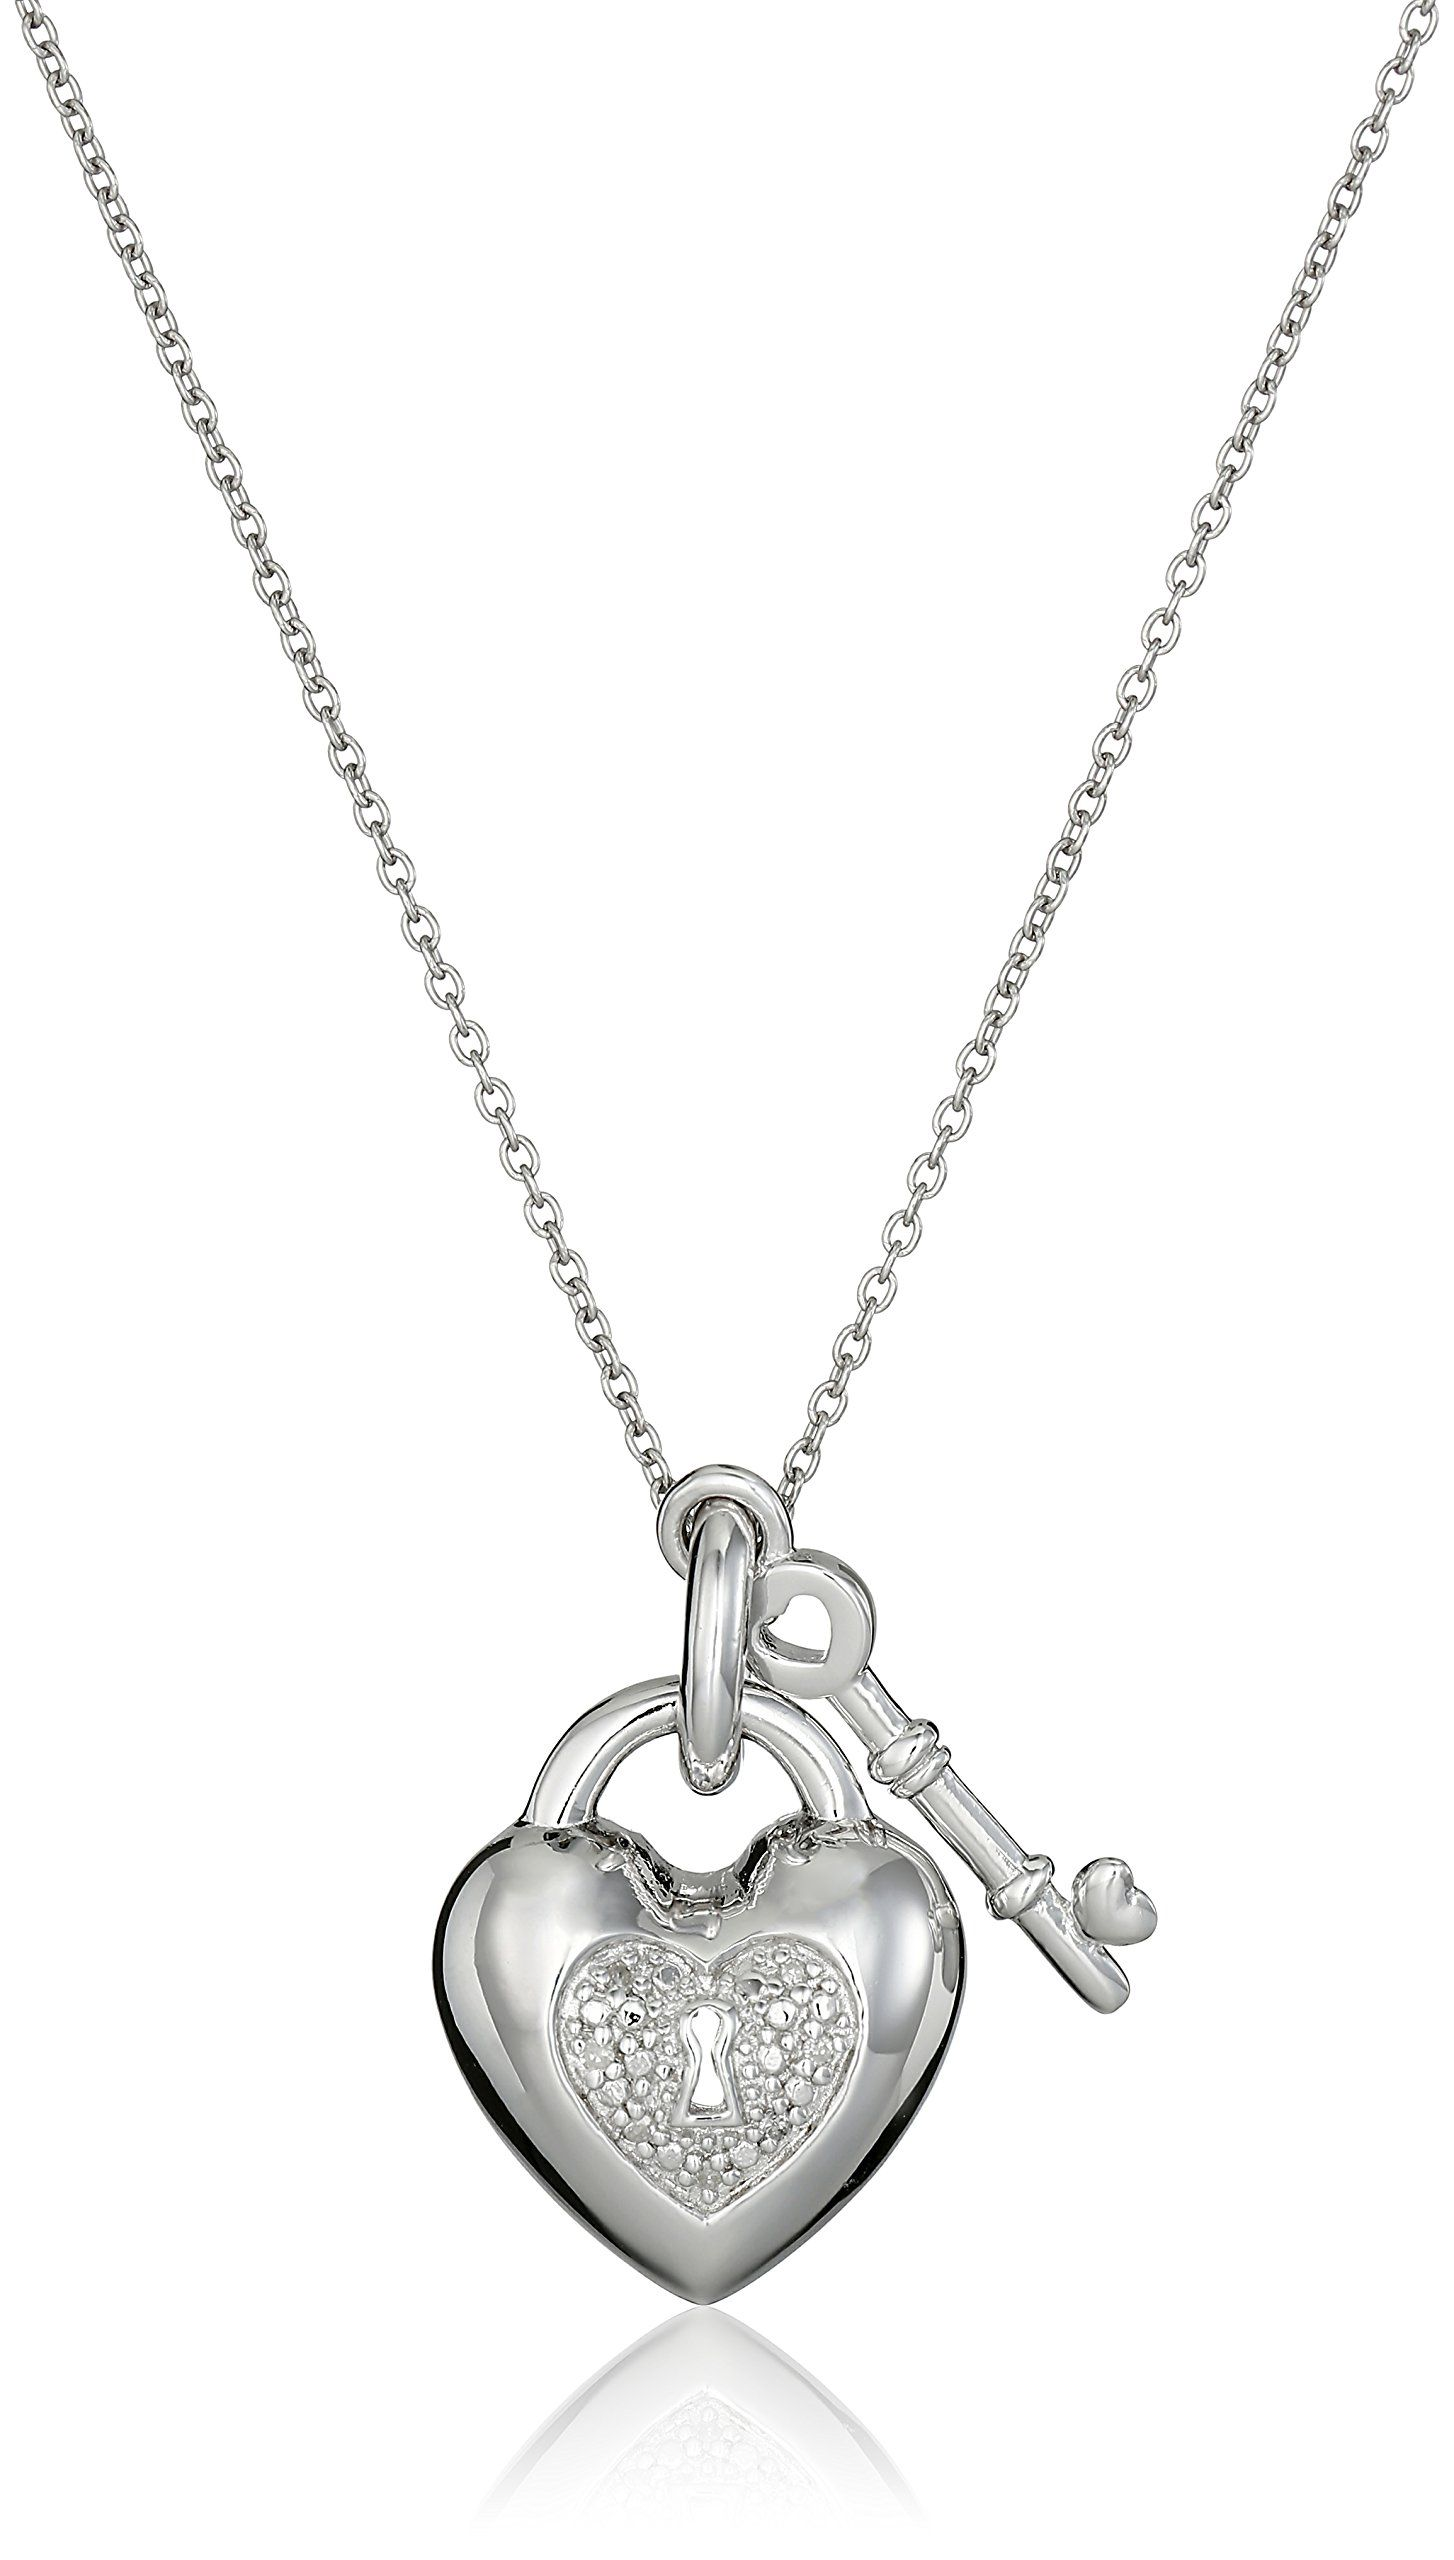 Sterling silver diamond heart key pendant necklace 18 all our sterling silver diamond heart key pendant necklace 18 all our diamond suppliers confirm mozeypictures Images